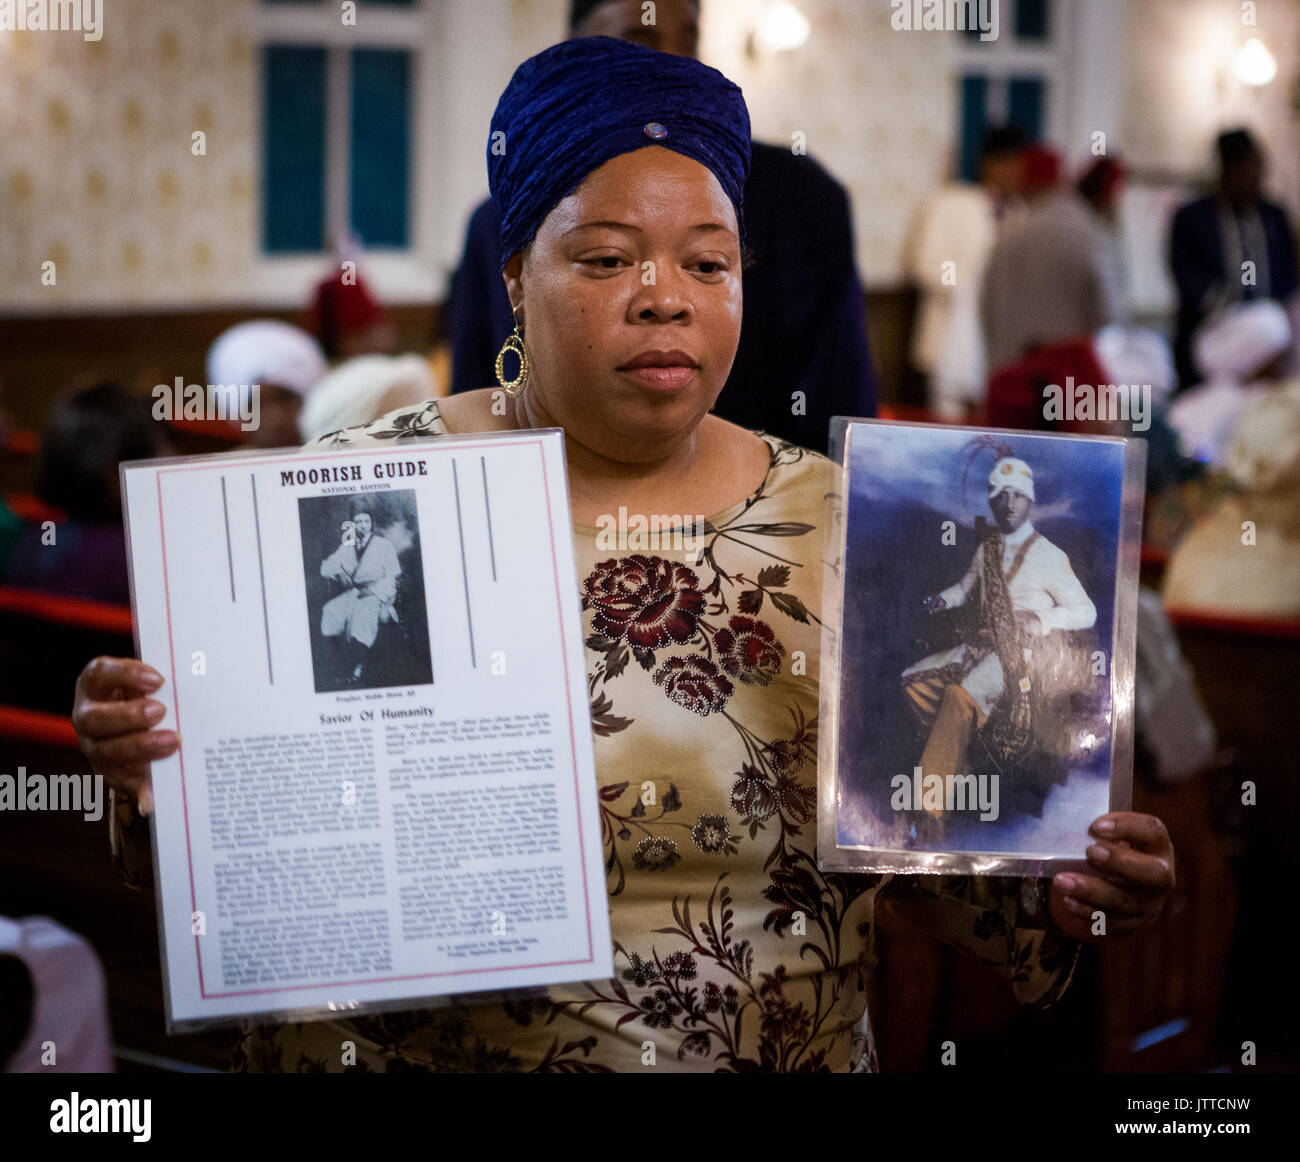 Moorish woman at Temple No. 9 in Chicago, Illinois. - Stock Image